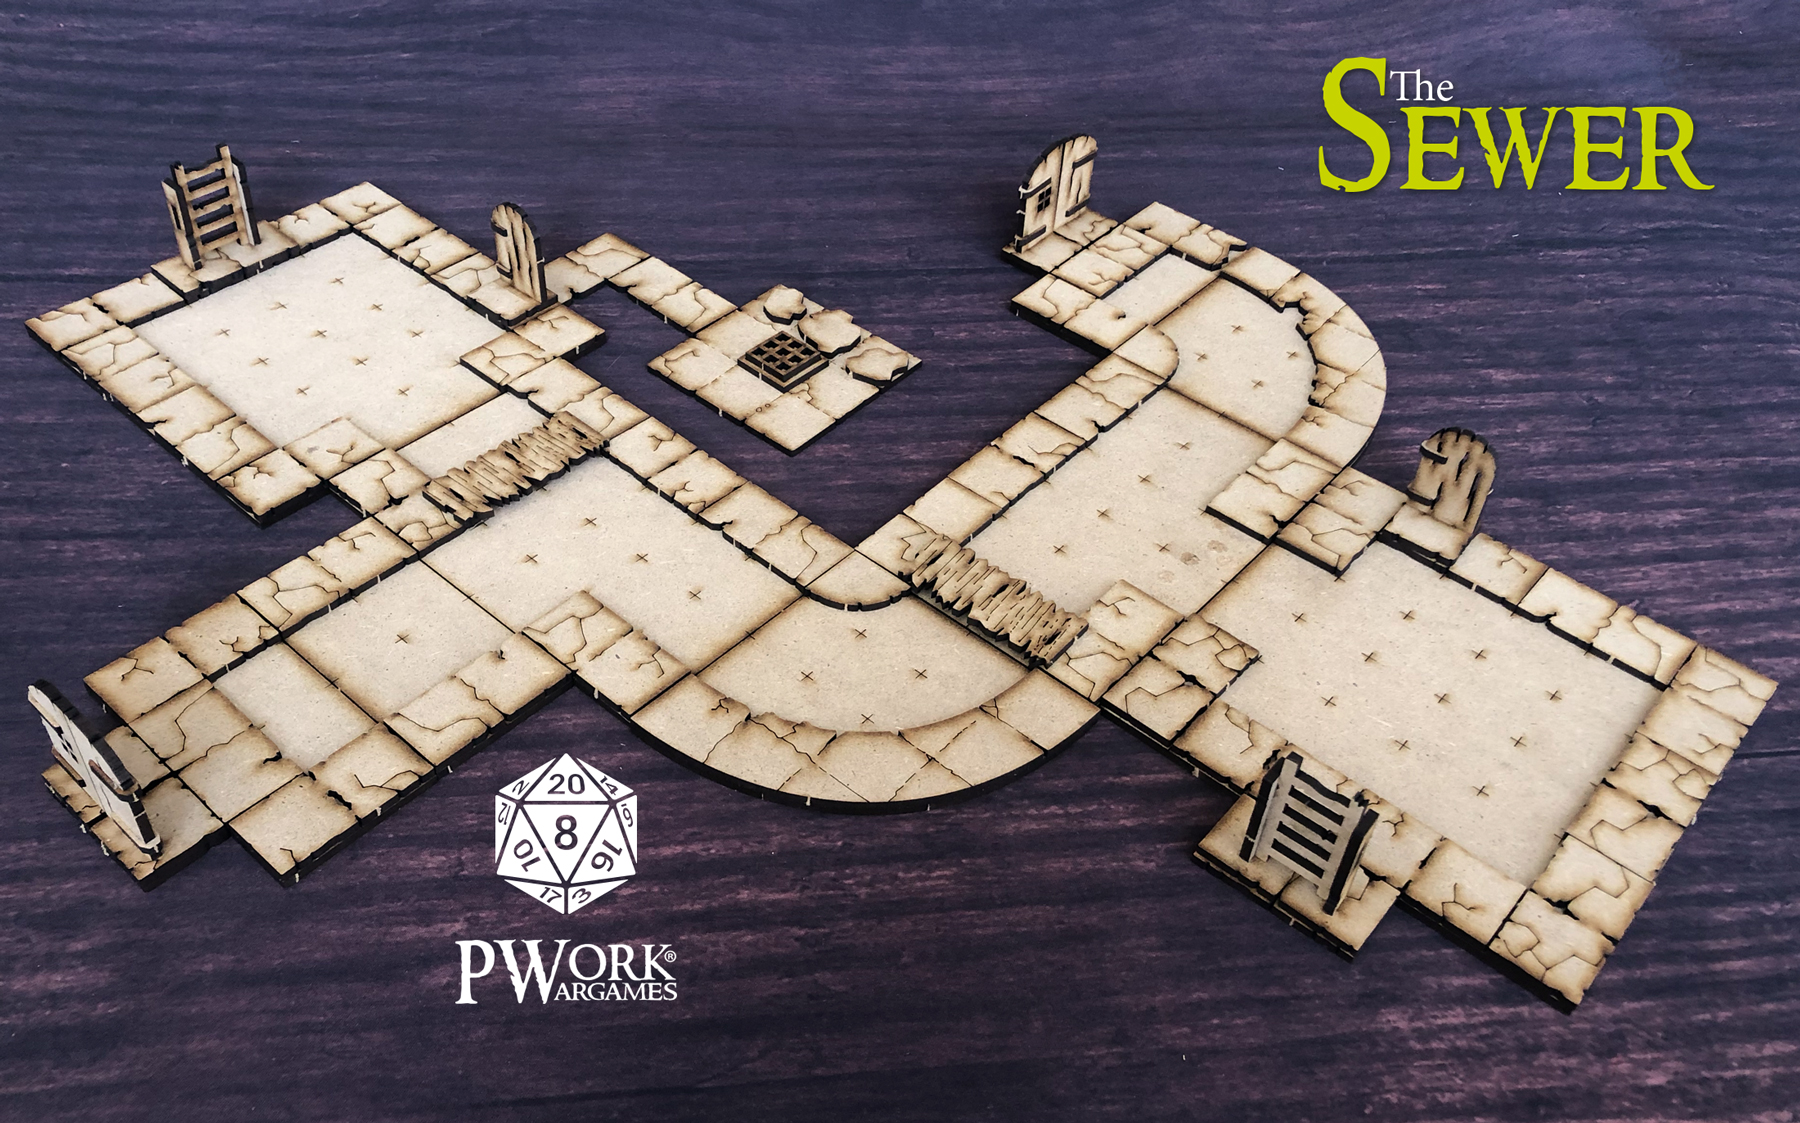 The Sewer - PWork Wargames